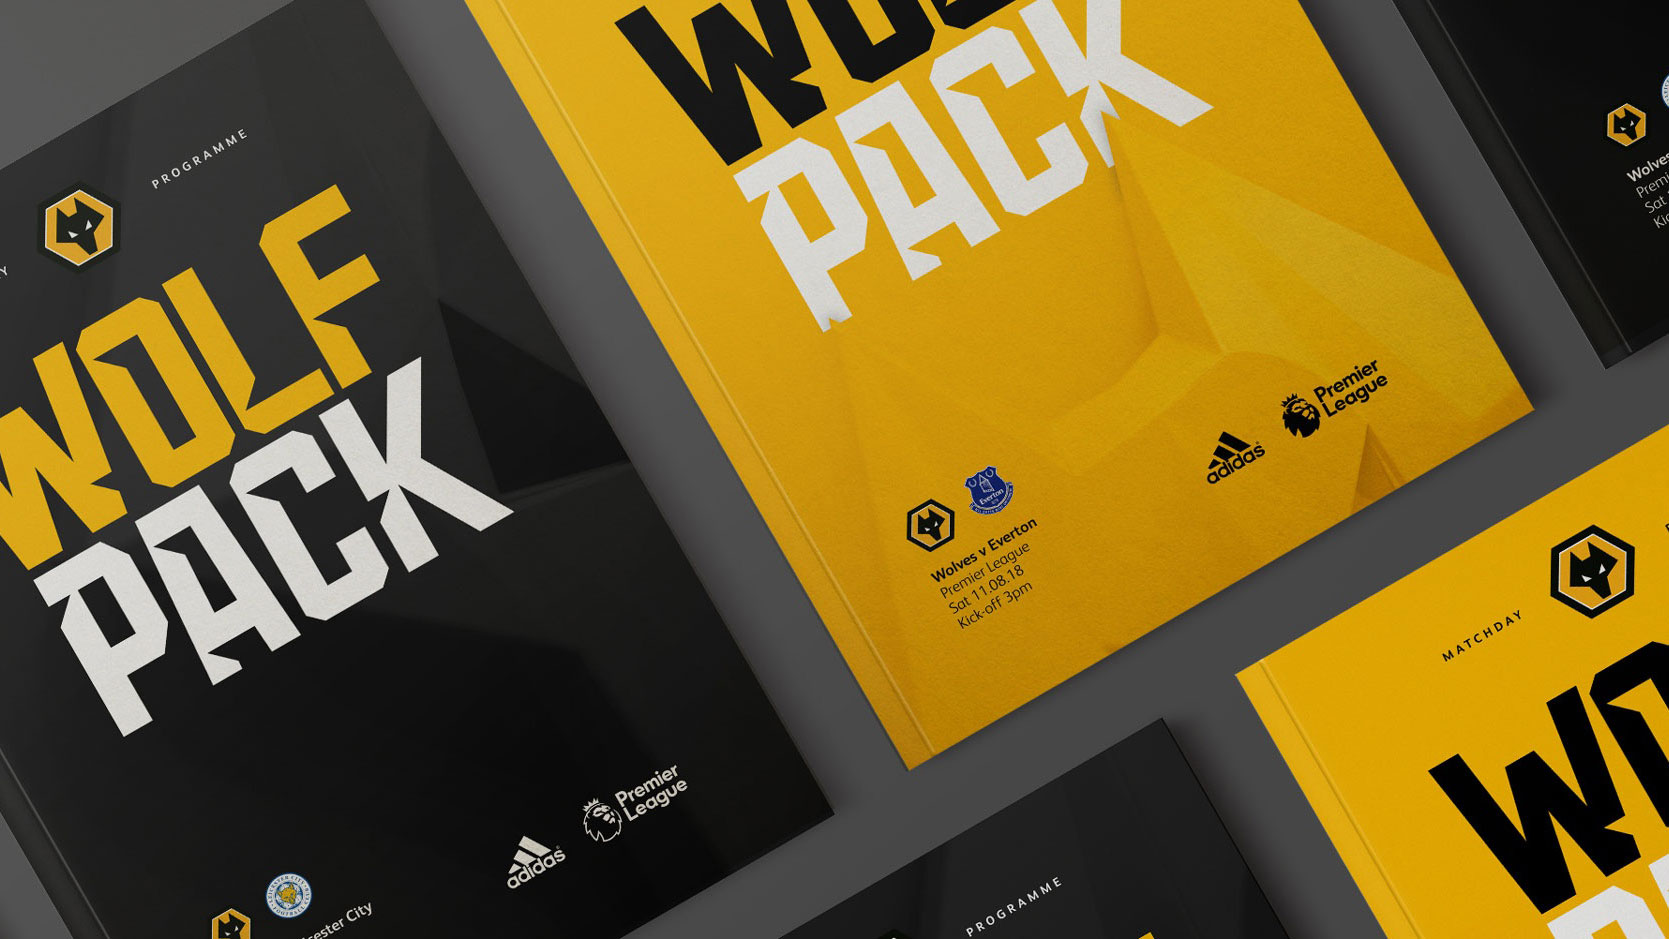 Wolves rebrand puts club ahead of the pack | Creative Bloq